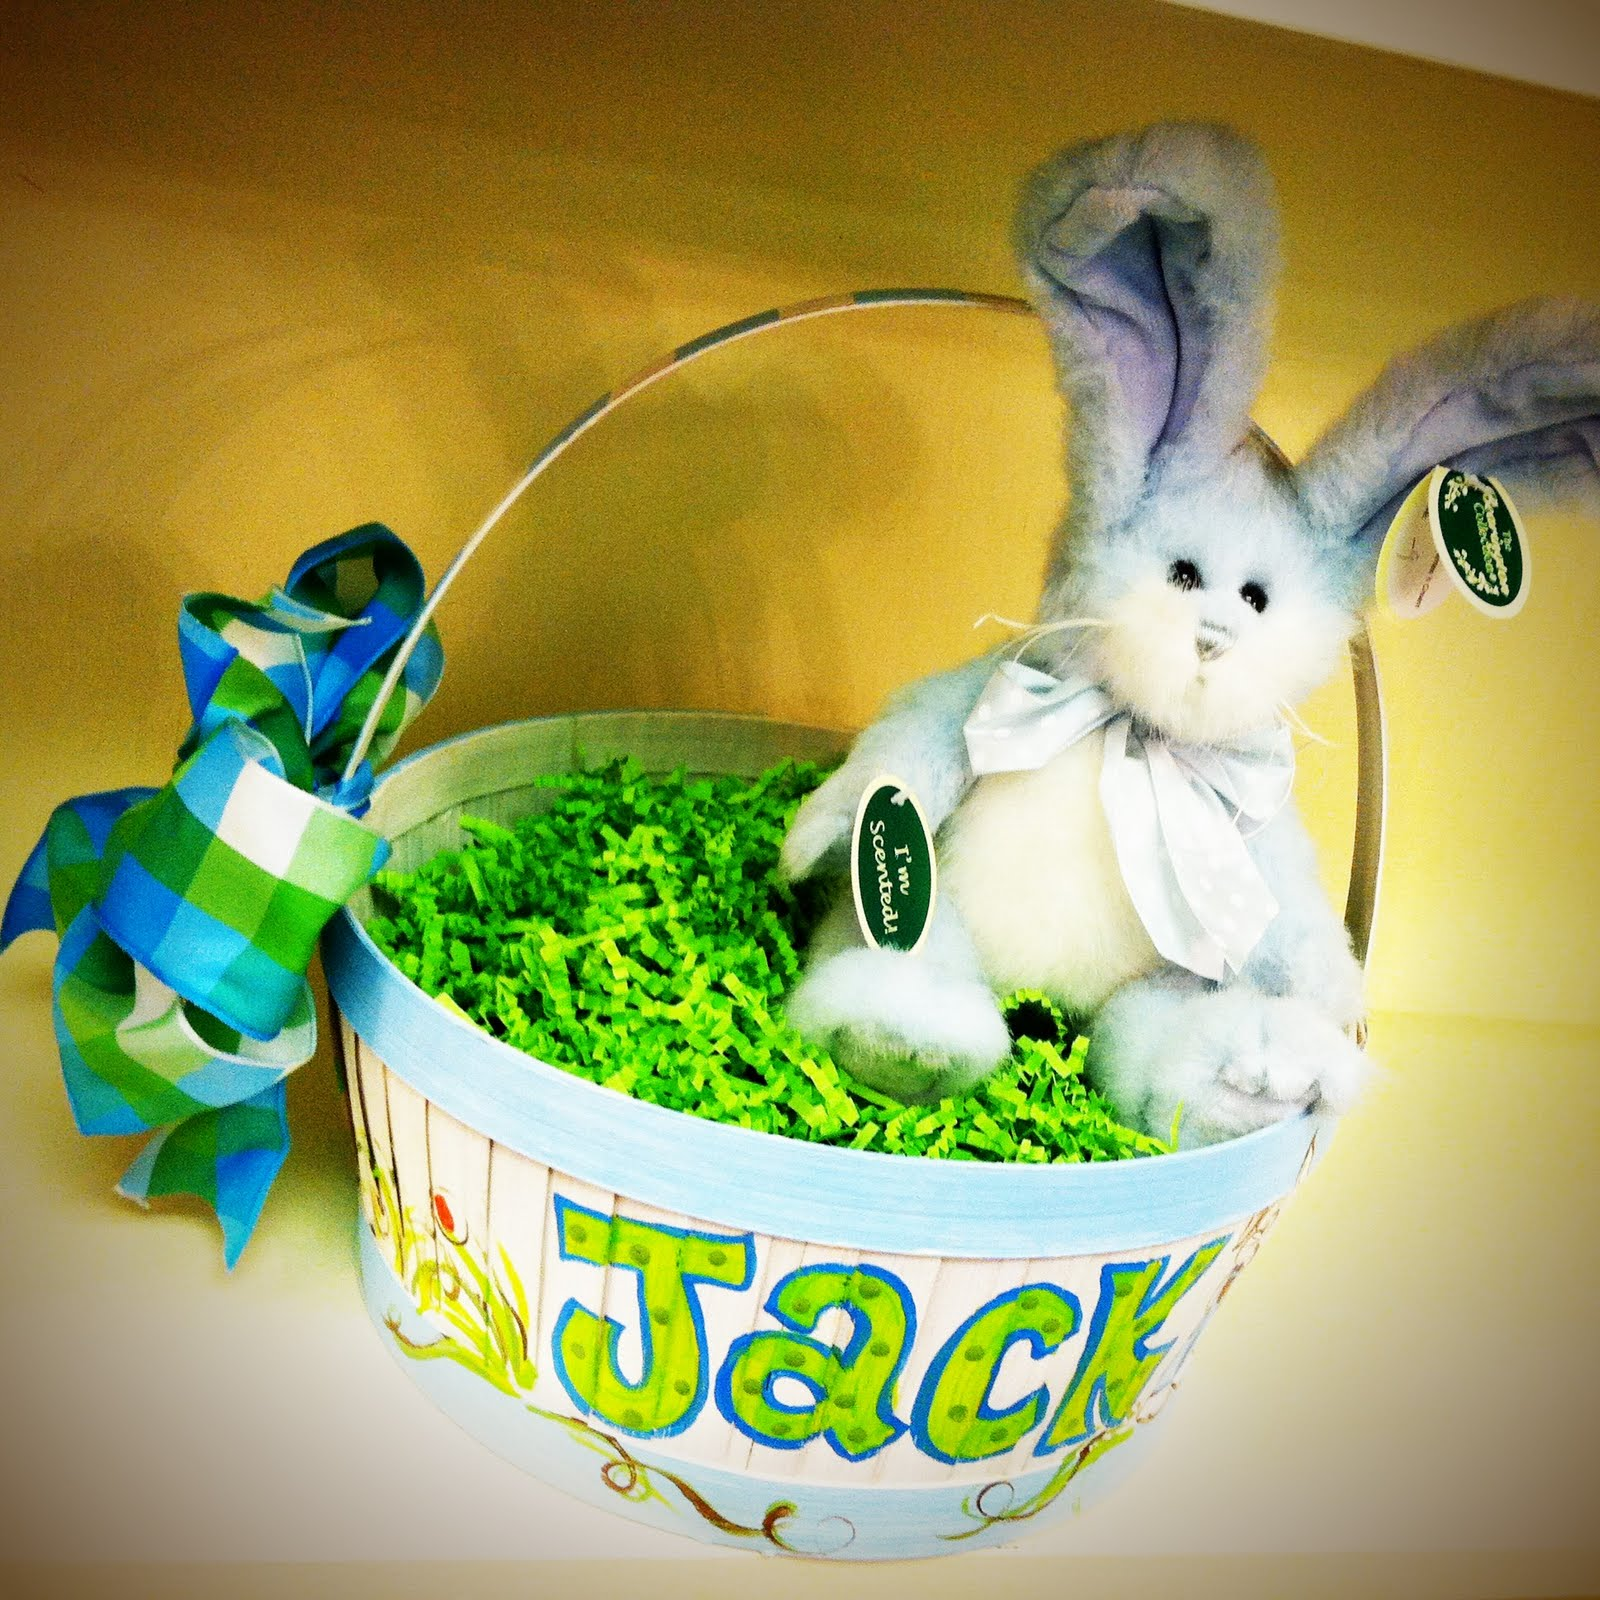 Sowell Life: Easter basket ideas for kids/teens